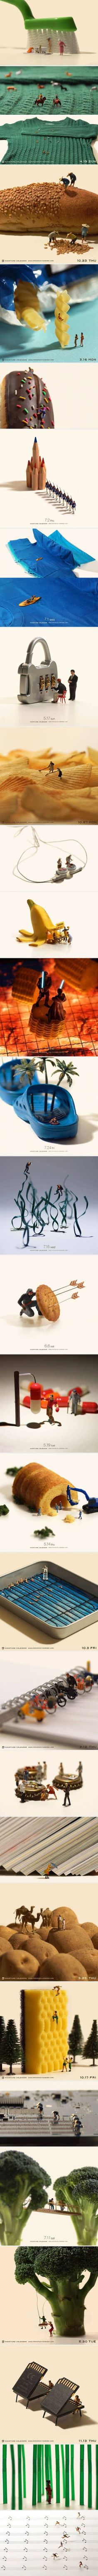 Tiny figurines interacting with everyday objects in interesting ways